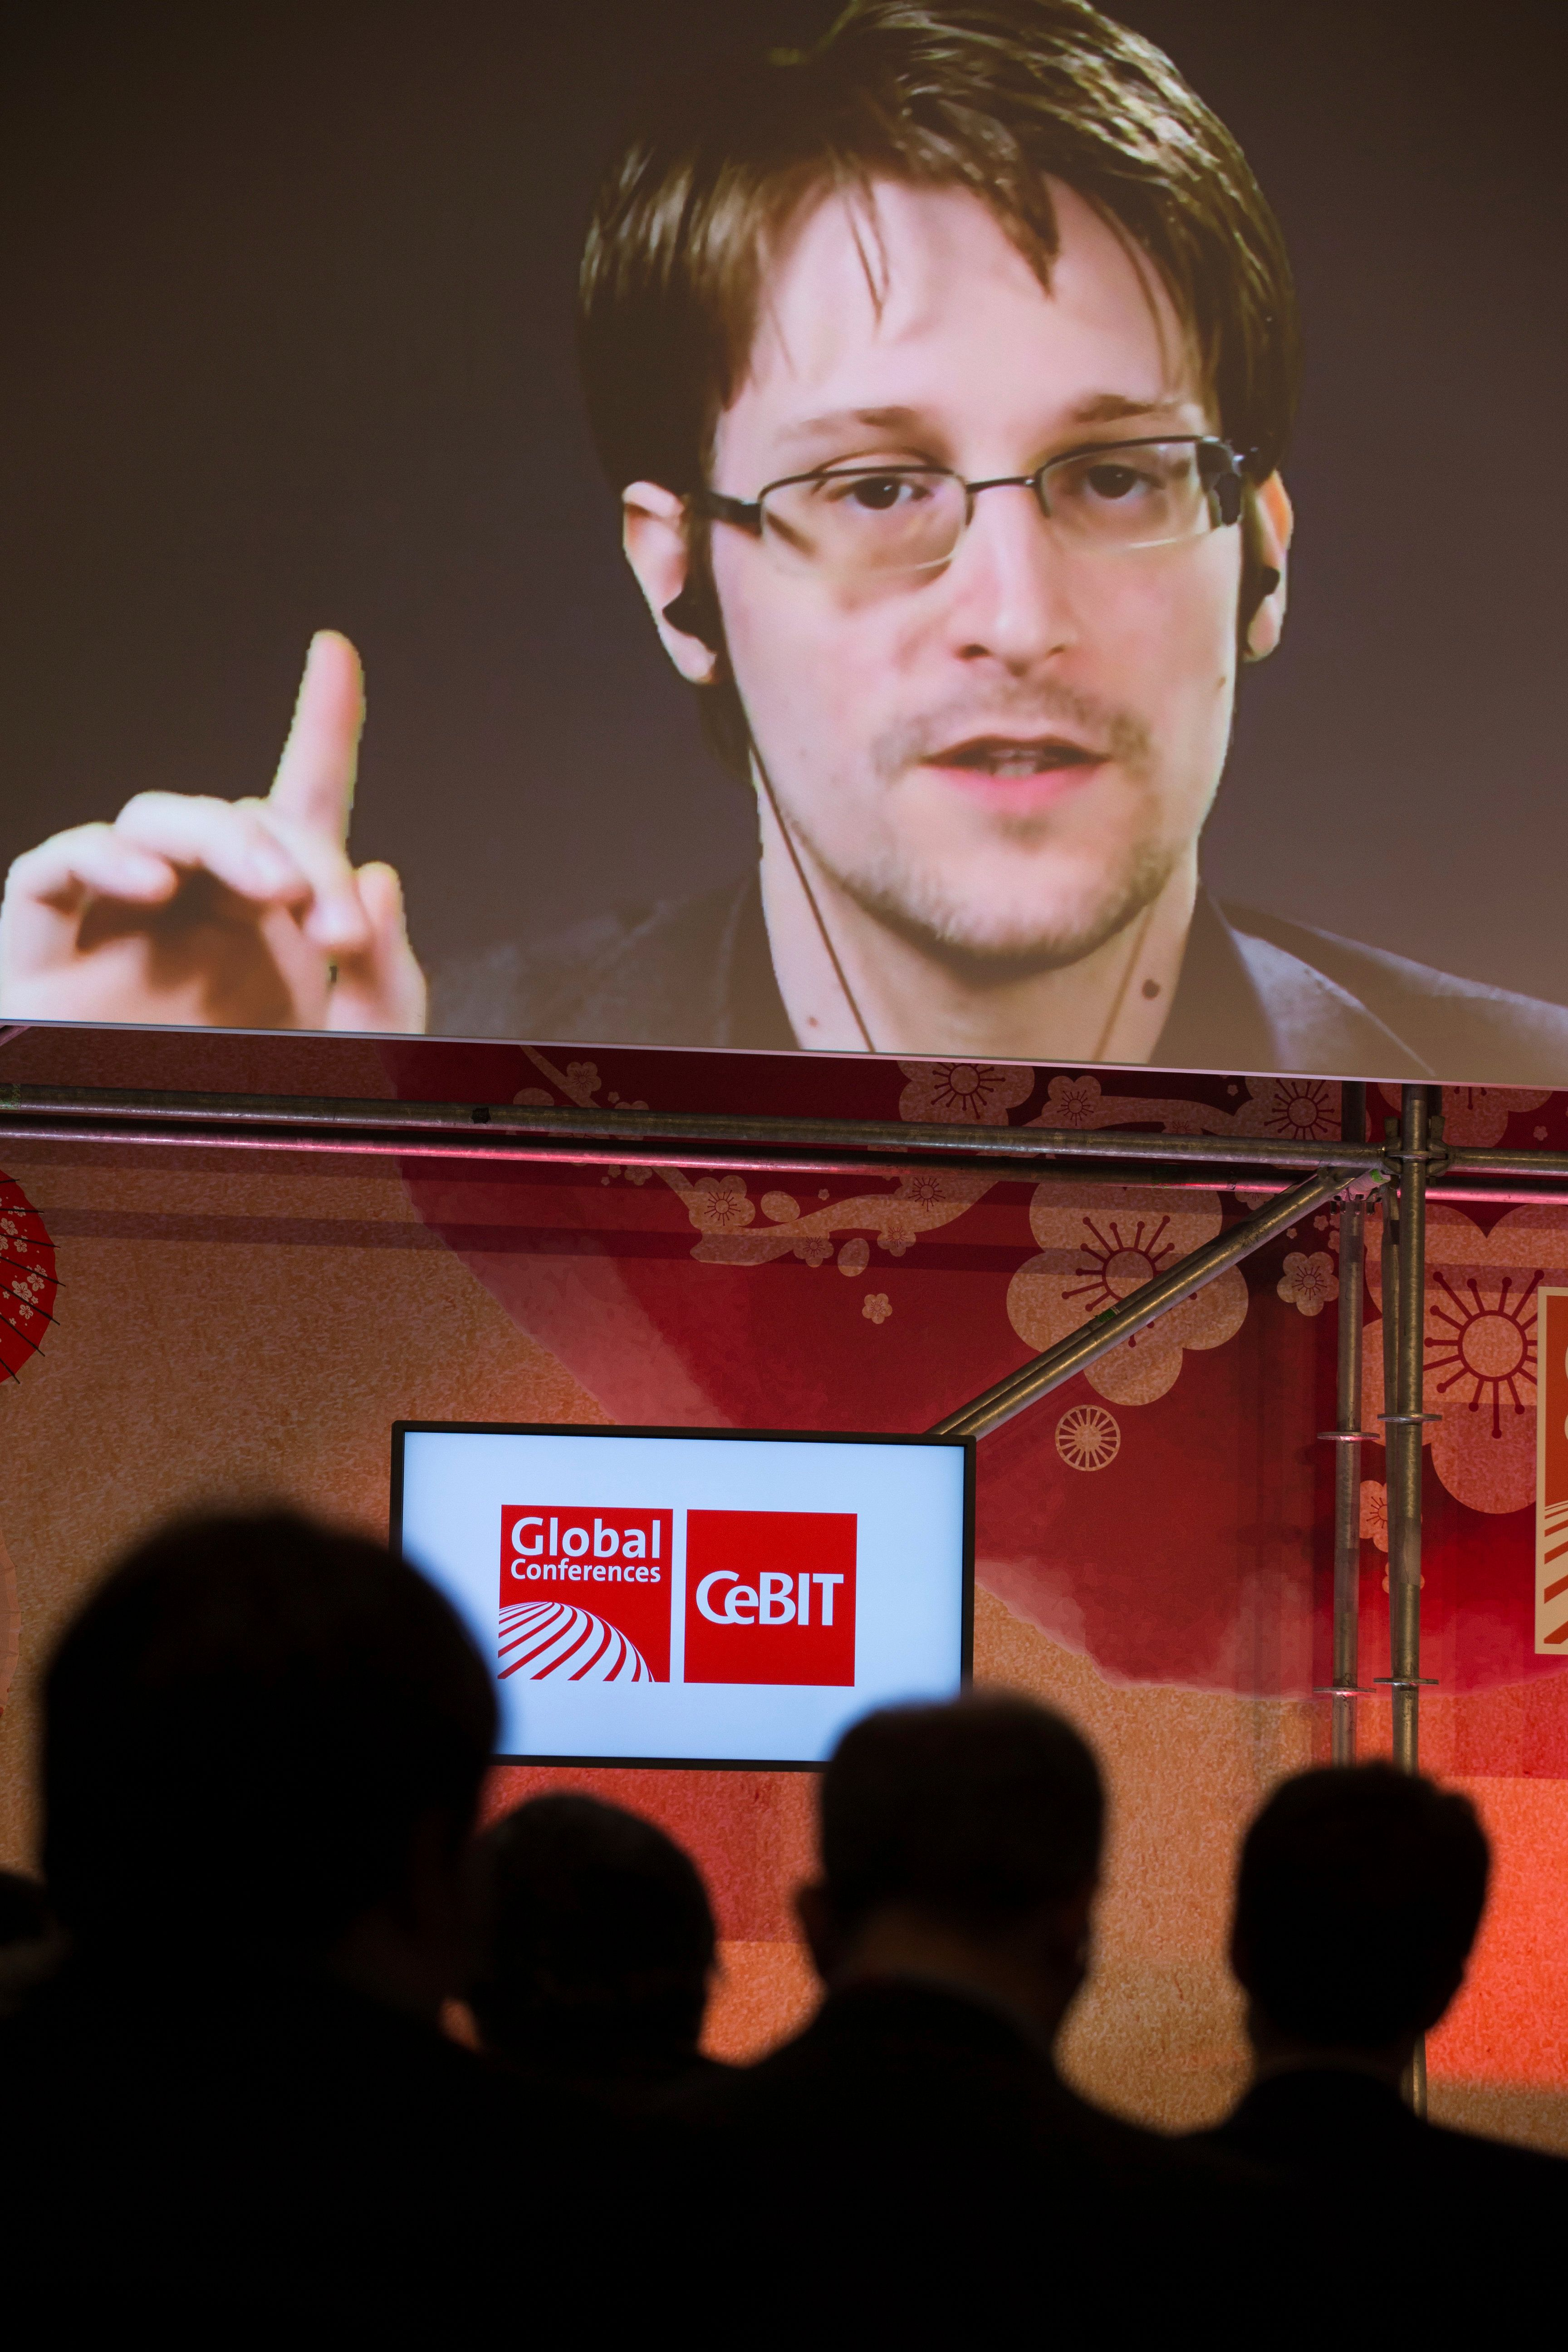 NSA Whistleblower Edward Snowden: 'I Can't Say I'm Safe' In